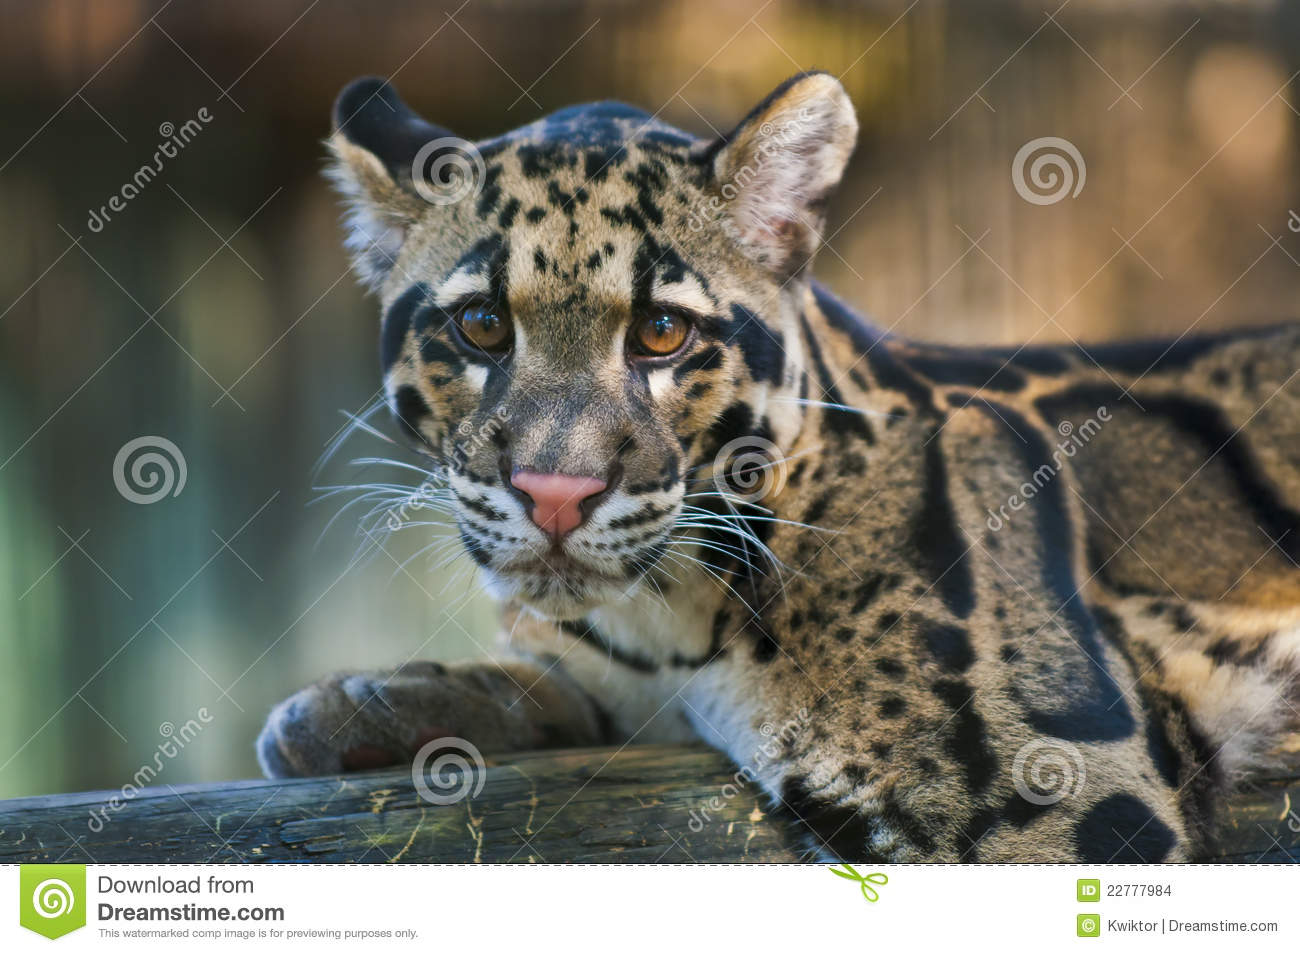 Download Clouded Leopard stock photo. Image of nervous, carnivore - 22777984